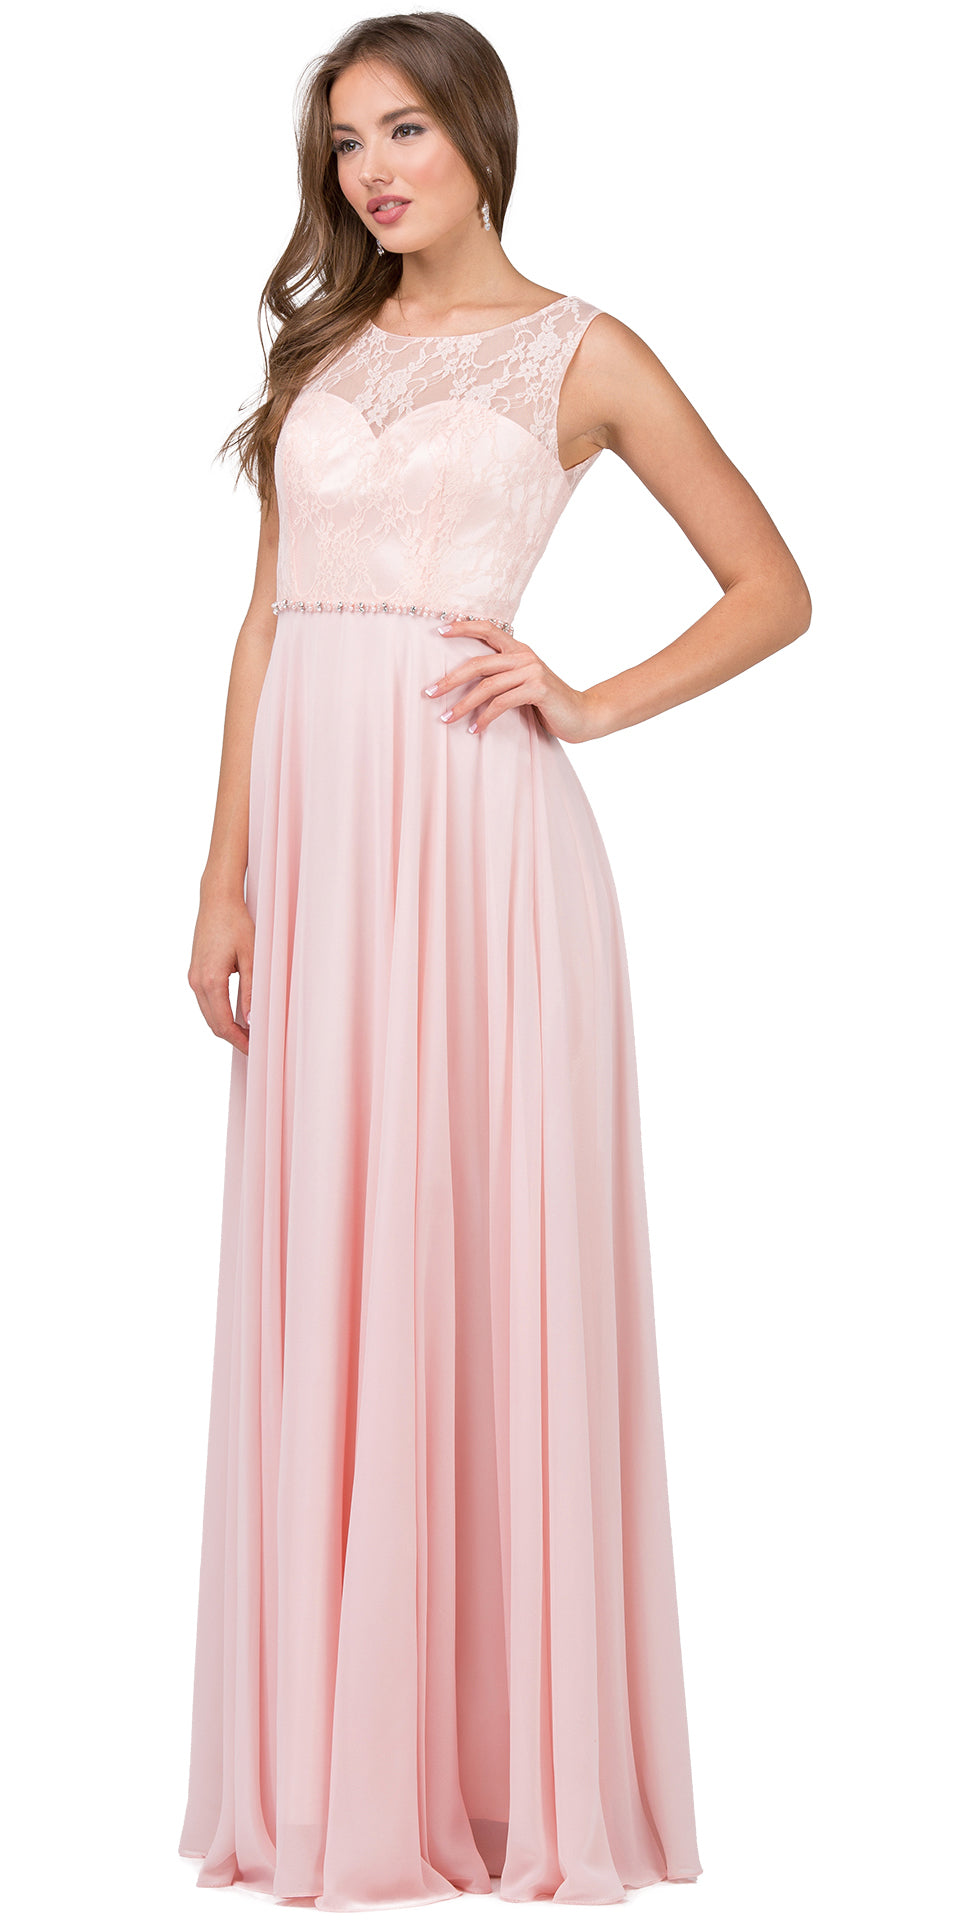 Main image of Lace Bodice Beaded Waist Long Chiffon Bridesmaid Dress